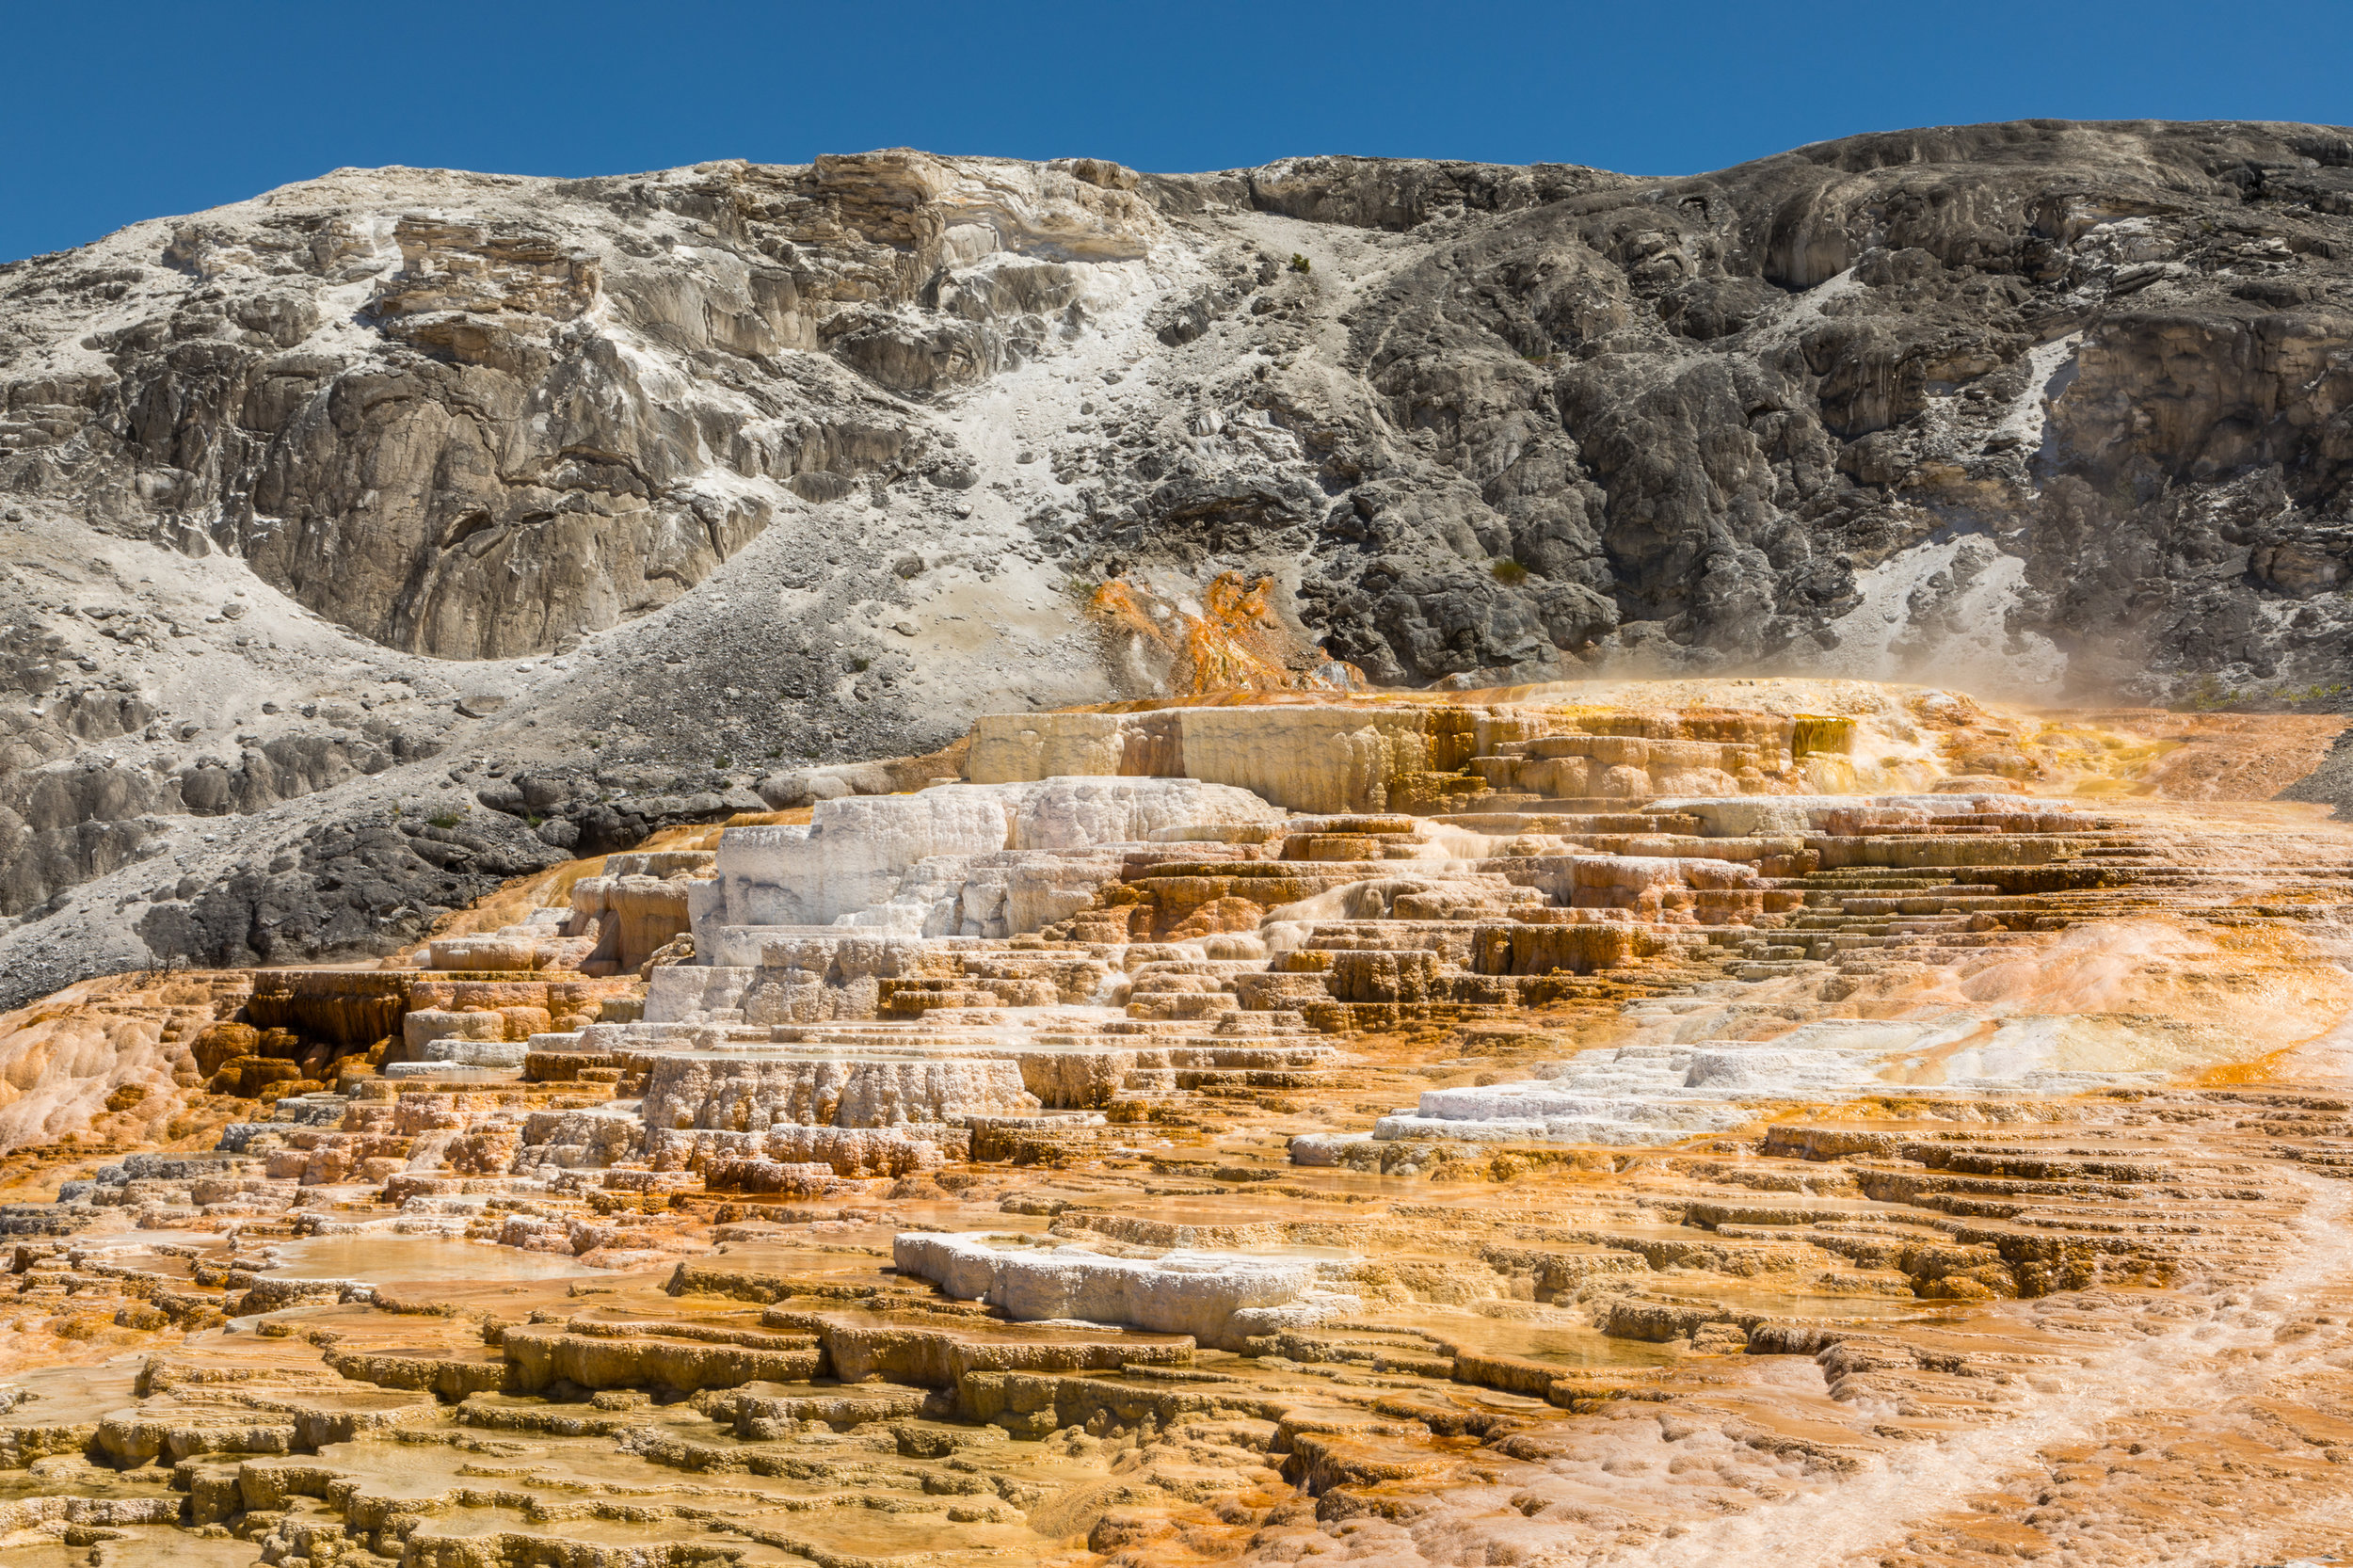 Mammoth Hot Springs, Yellowstone National Park, Image # 7319